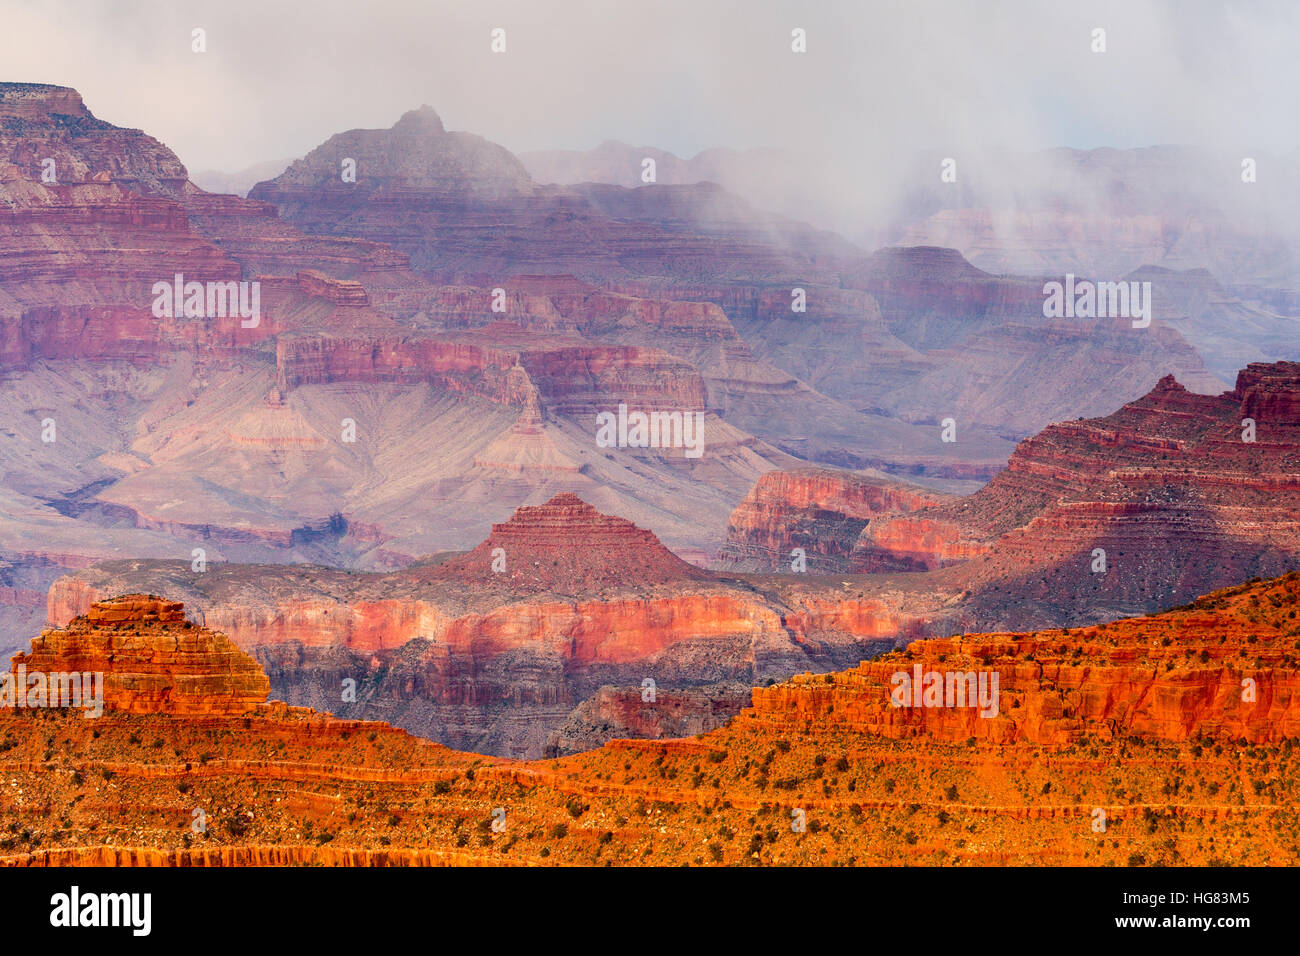 Snow showers over the Grand Canyon as sunset lights a ridge, as seen from Yavapai Point. Grand Canyon National Park, Arizona Stock Photo